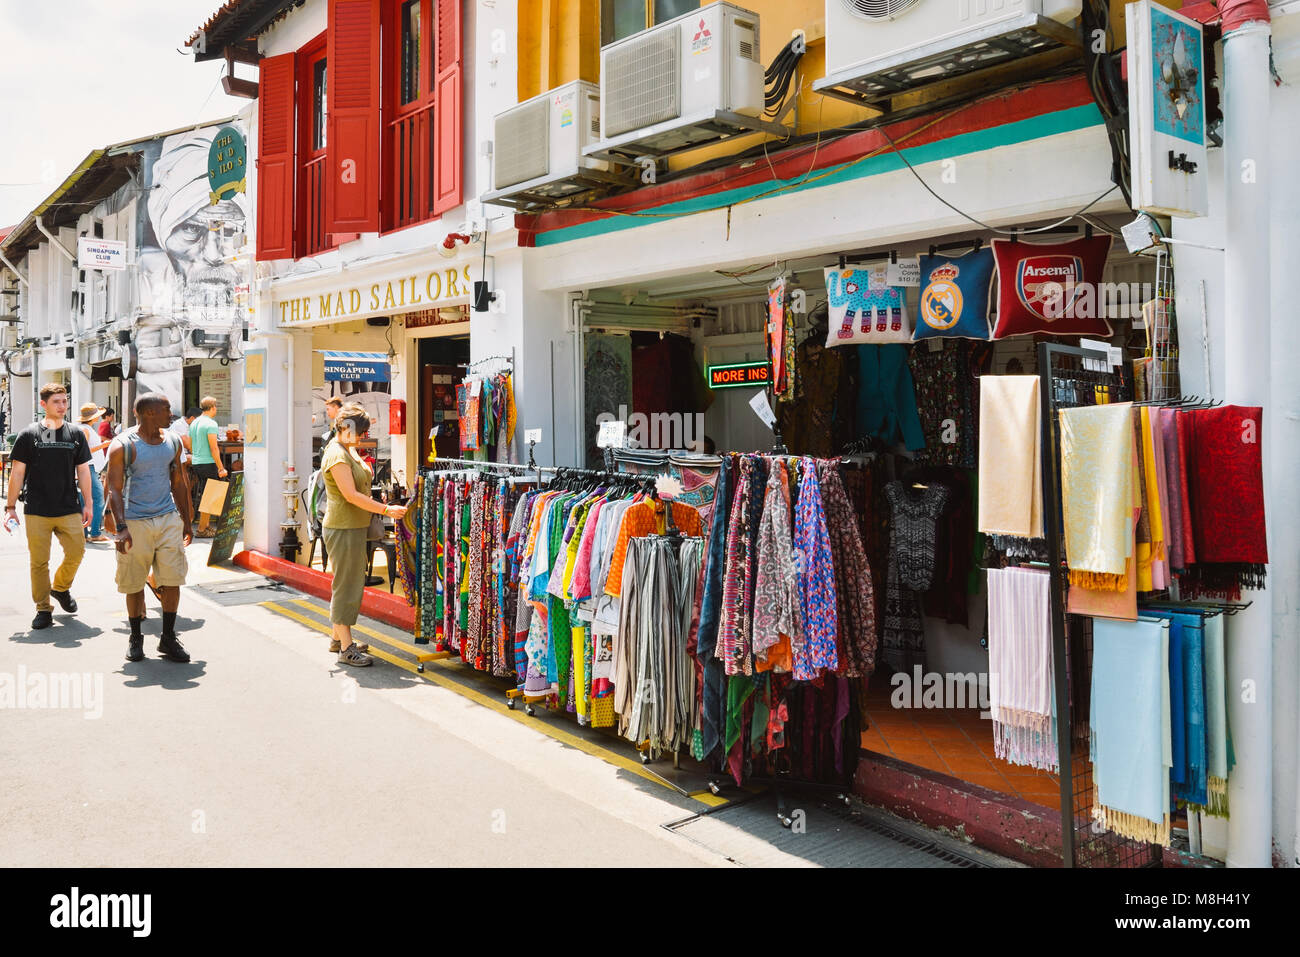 Singapore Haji Lane. Among the pre-war colonial-style shophouses, a tourist browses a rack of colourful arab style - Stock Image